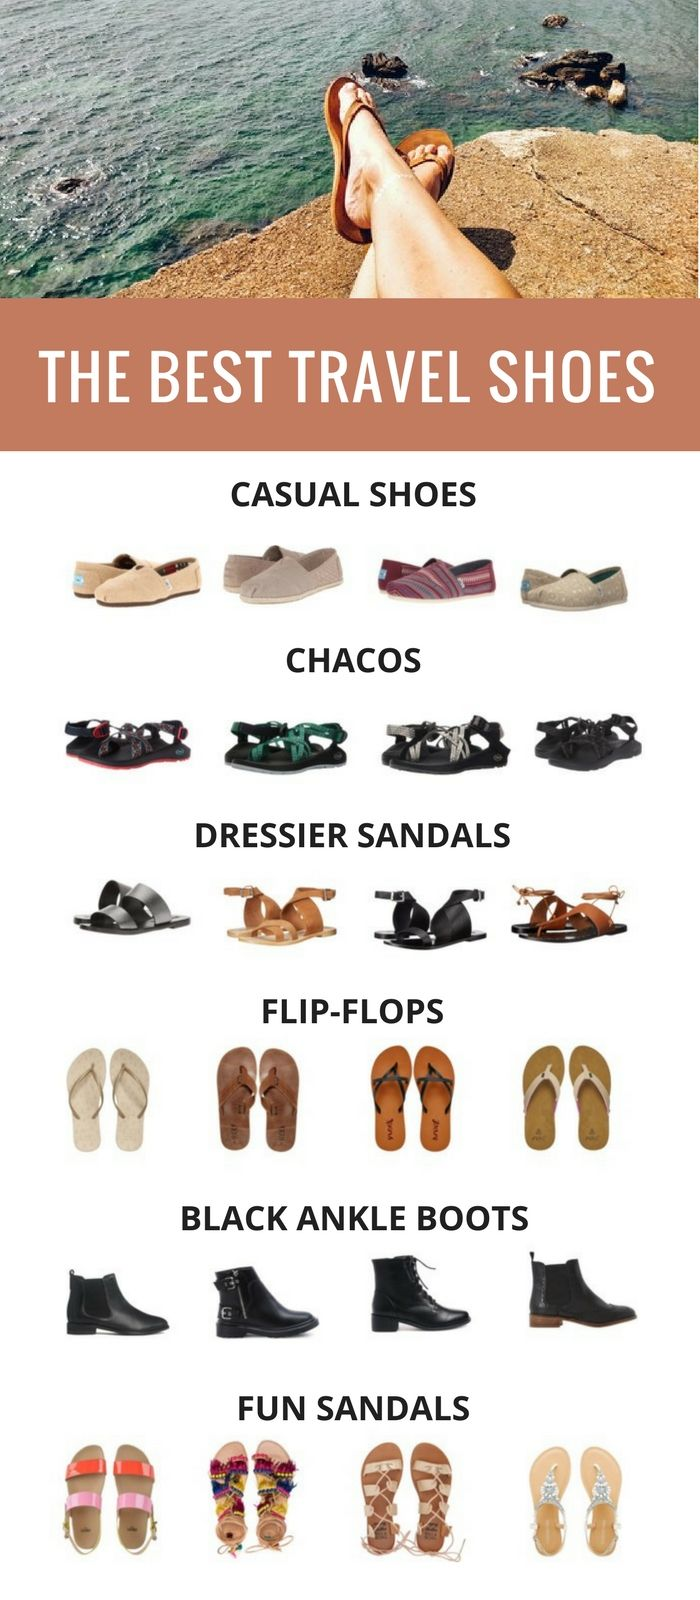 Packing Tips: Best Travel Shoes  I have tried and tested a variety of travel shoes over the last few years and have some stand out favorites. Nowadays, I alternate out the same brand of shoes as they wear down and often never even pick another color. Here are the best travel shoes to take on your next big trip!